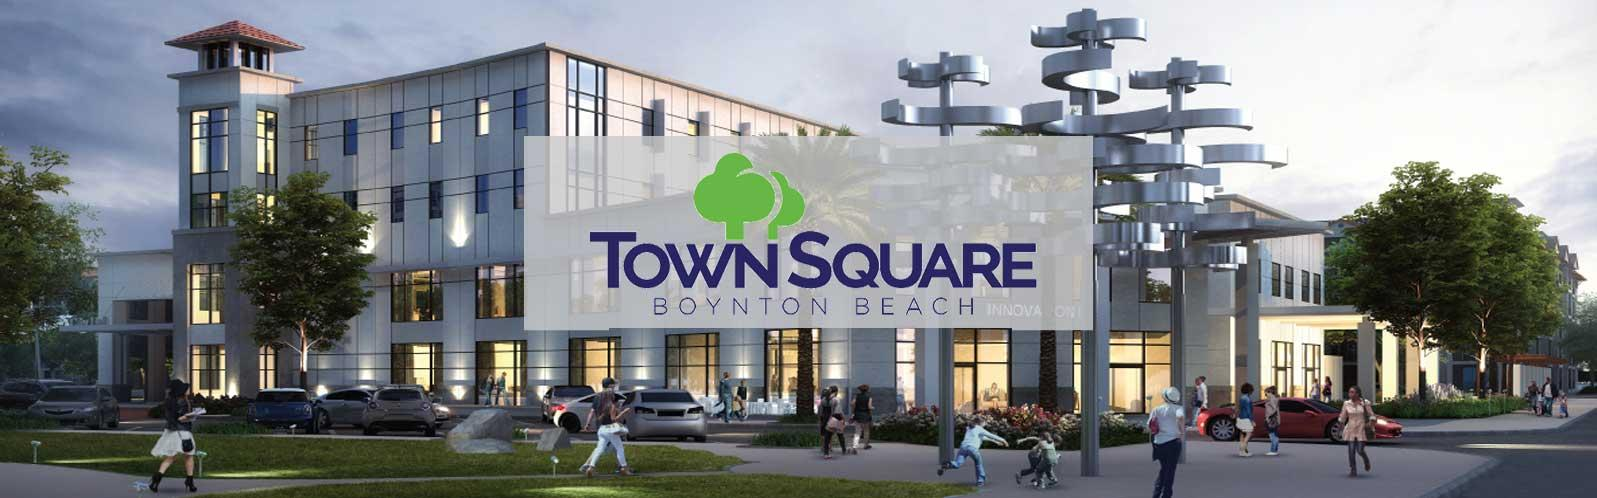 Town Square Boynton Beach